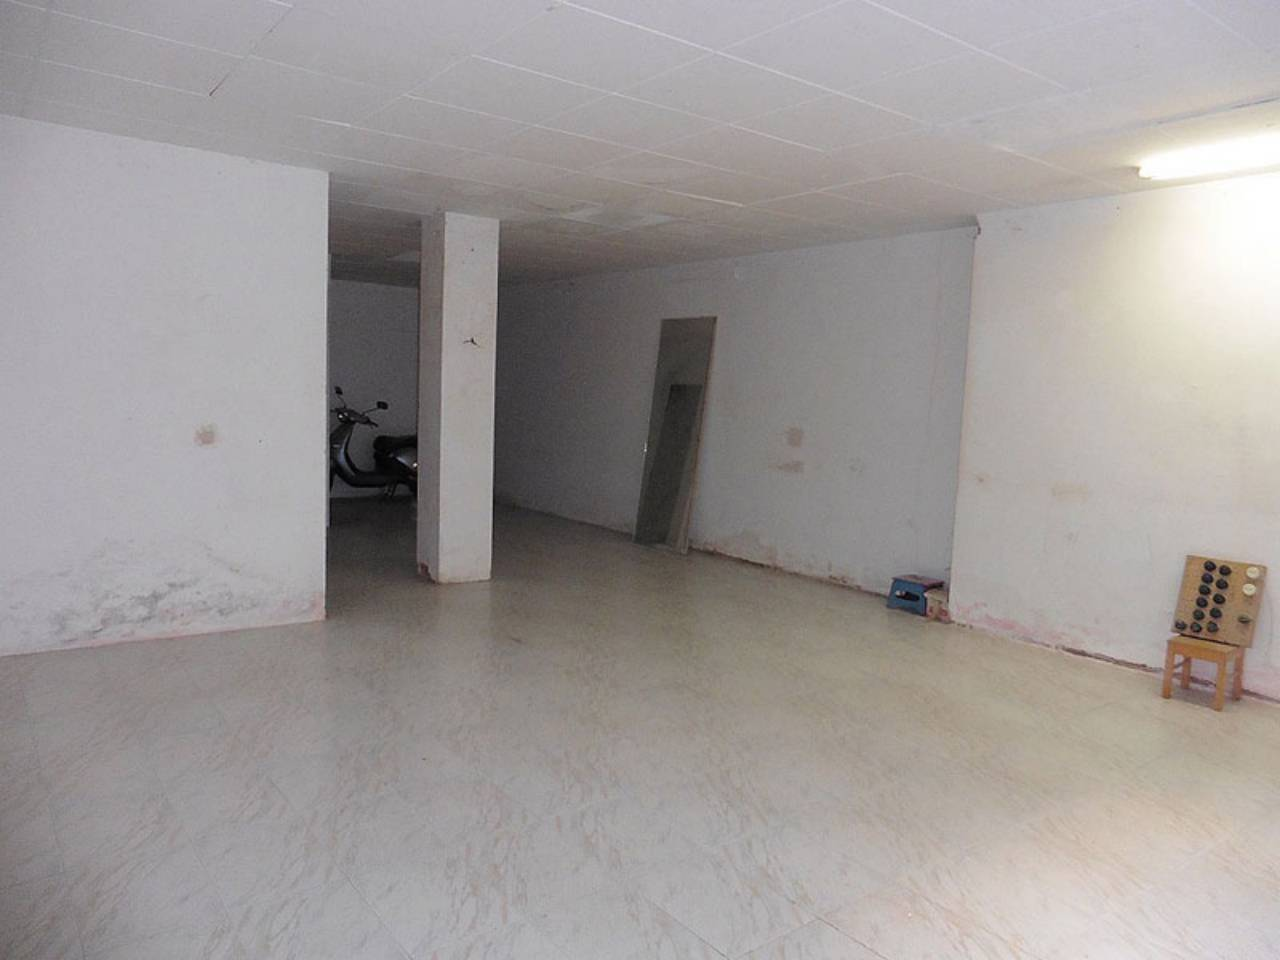 Local comercial en venta Nou Barris (Barcelona Capital)